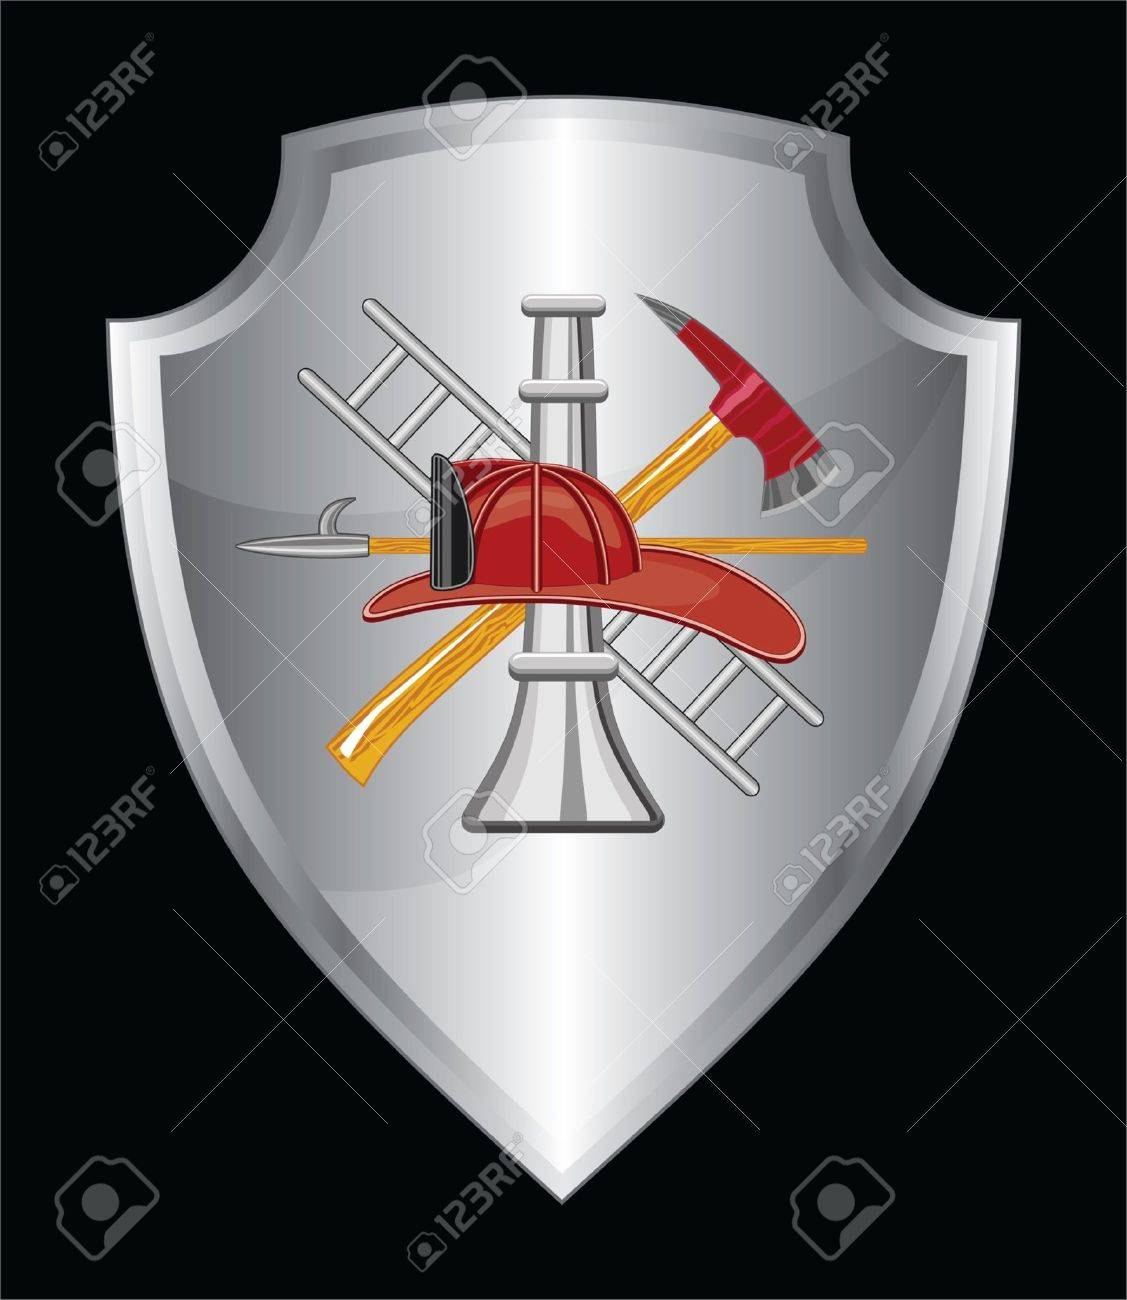 Firefighter Icon On Shield is an illustration of a shield with firefighter logo Stock Vector - 16899322